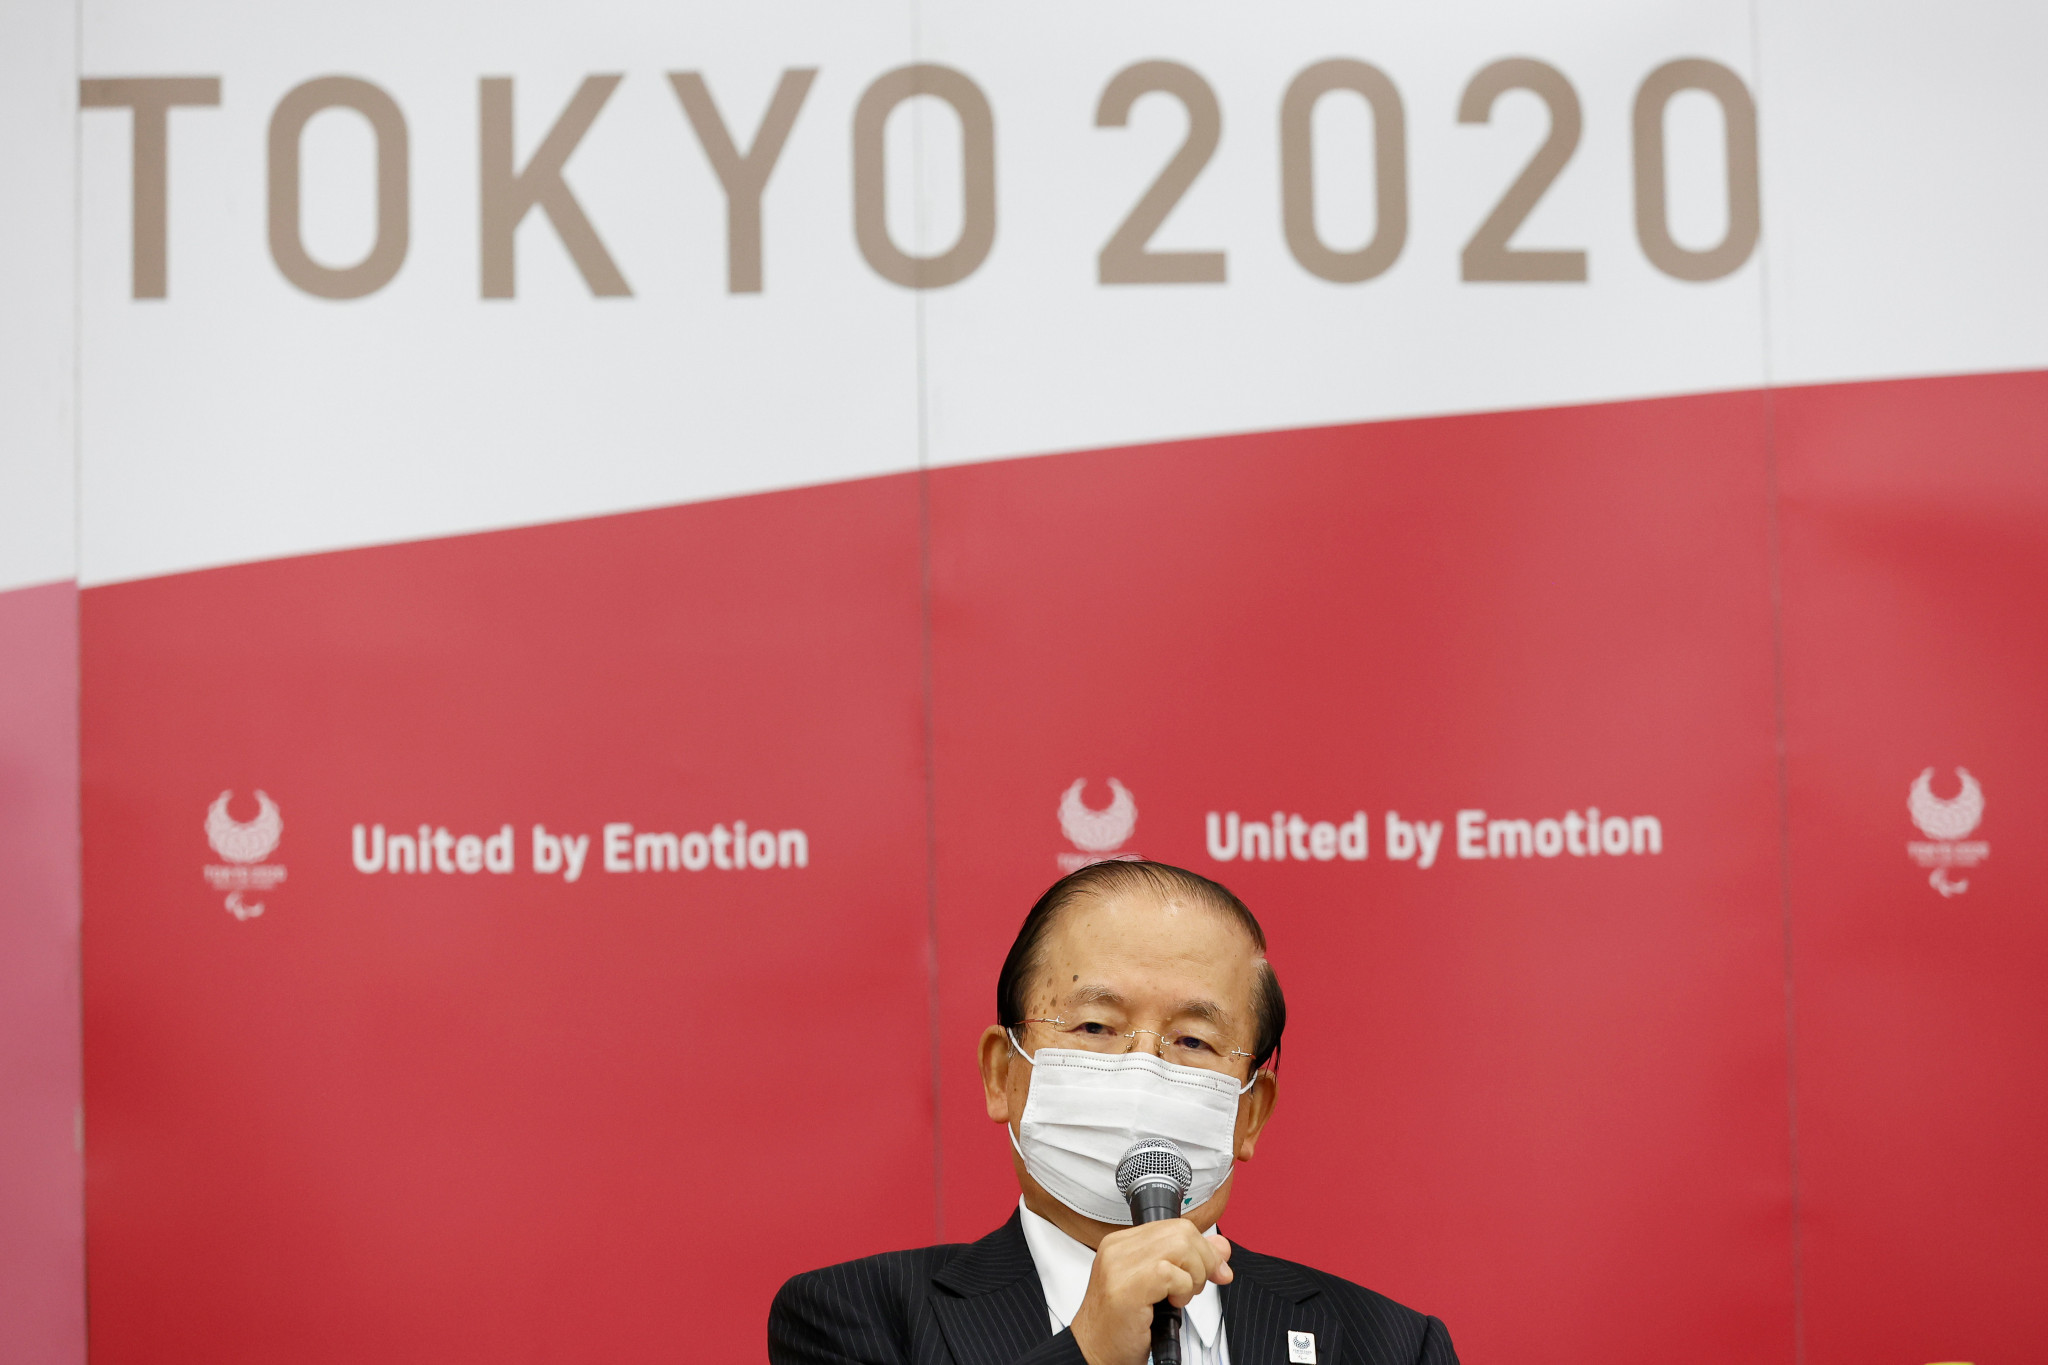 Tokyo 2020 Organising Committee to be reduced to 1,000 people following Olympic and Paralympic Games conclusion